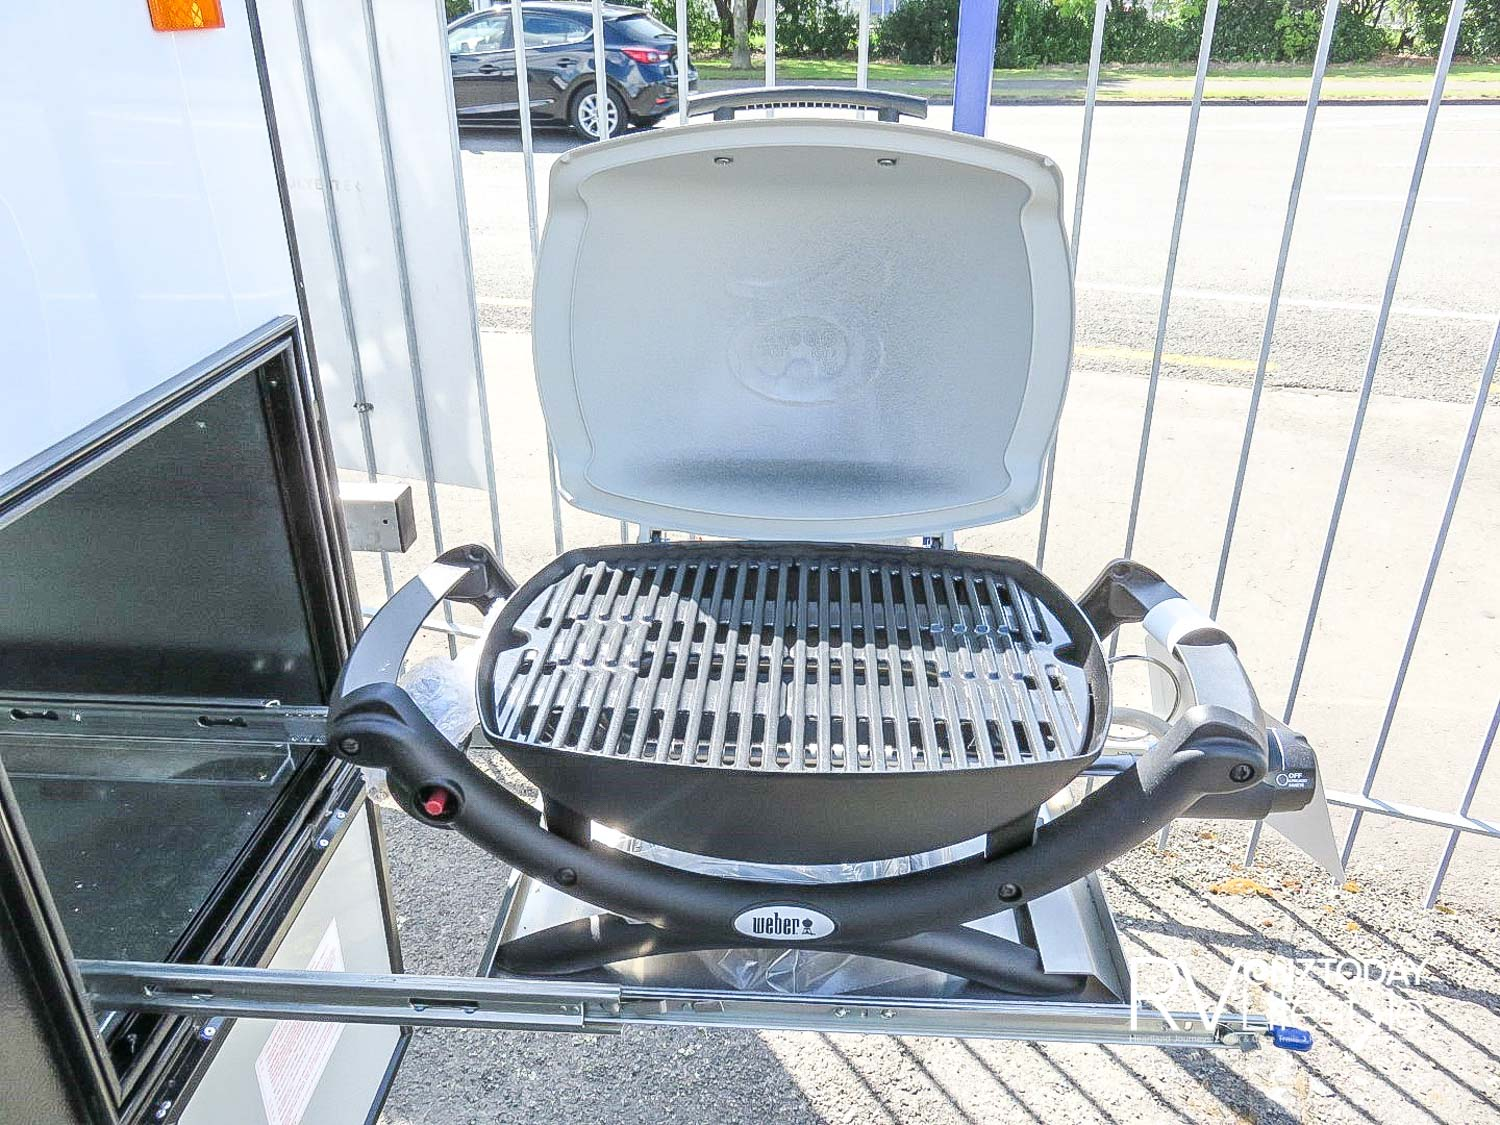 Love the slide-out BBQ in one of the rear storage lockers